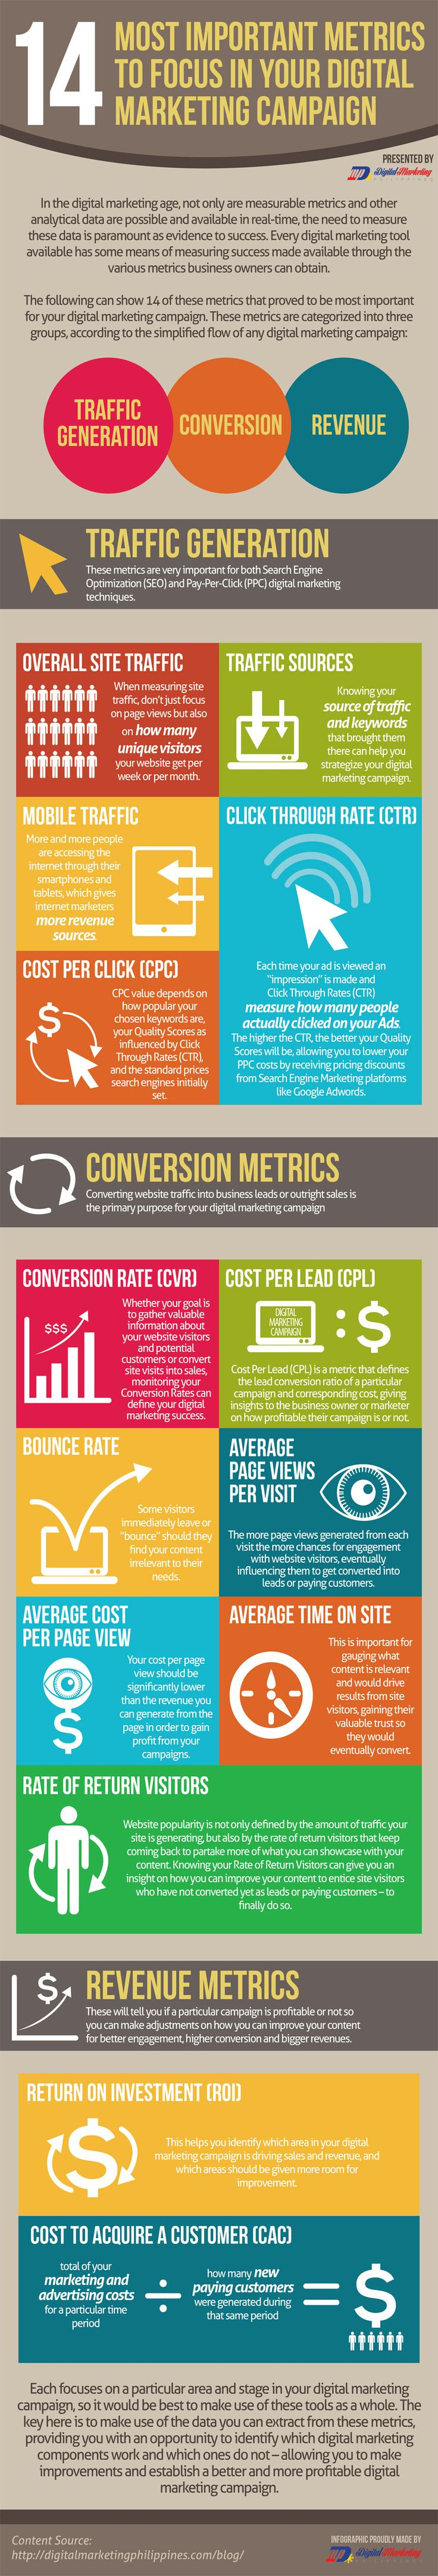 marketing metrics infographic